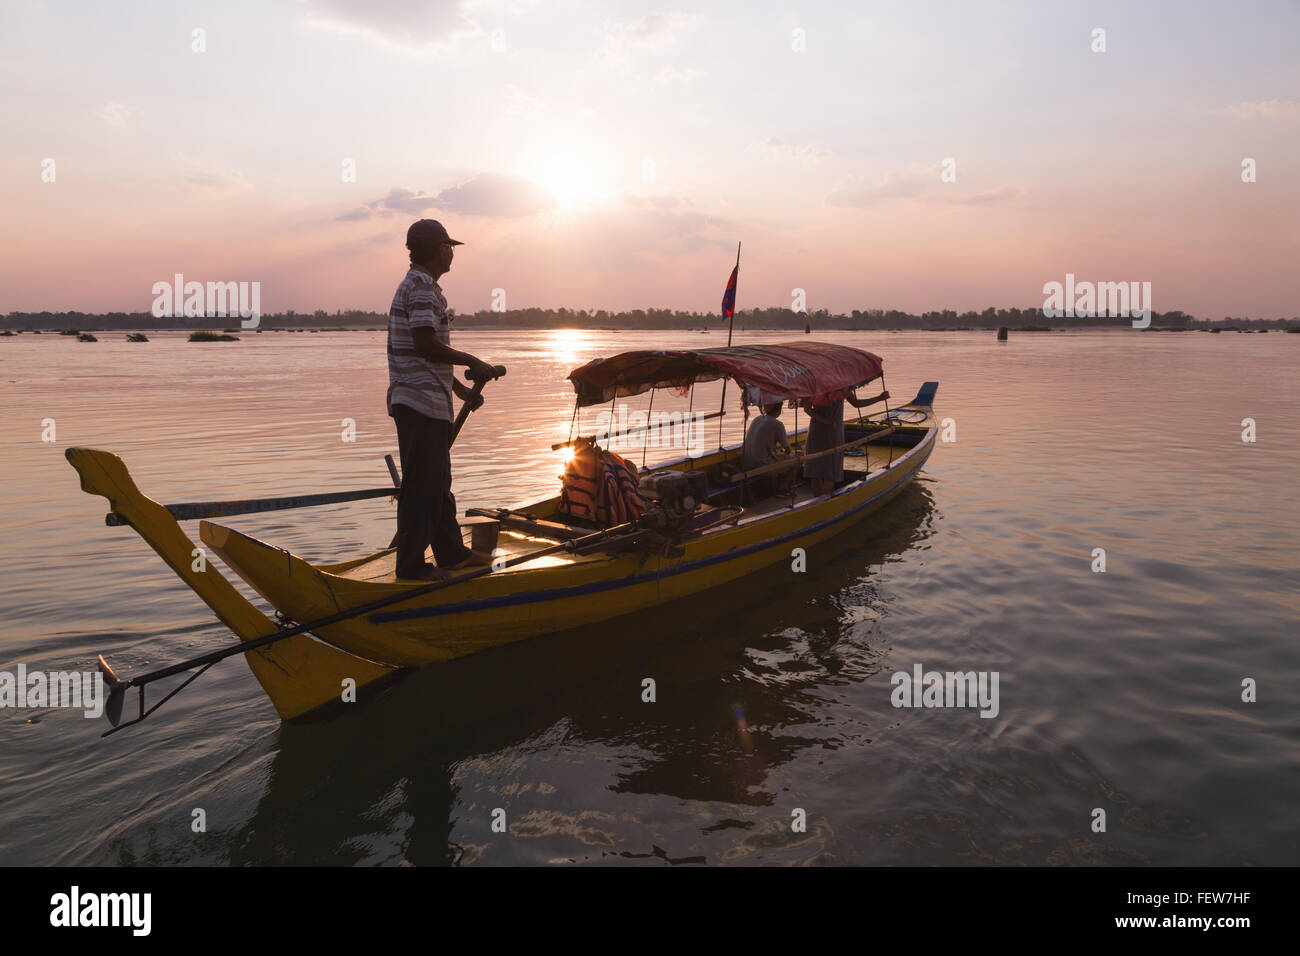 Fresh water dolphin watching on the Mekong, Cambodia. Stock Photo